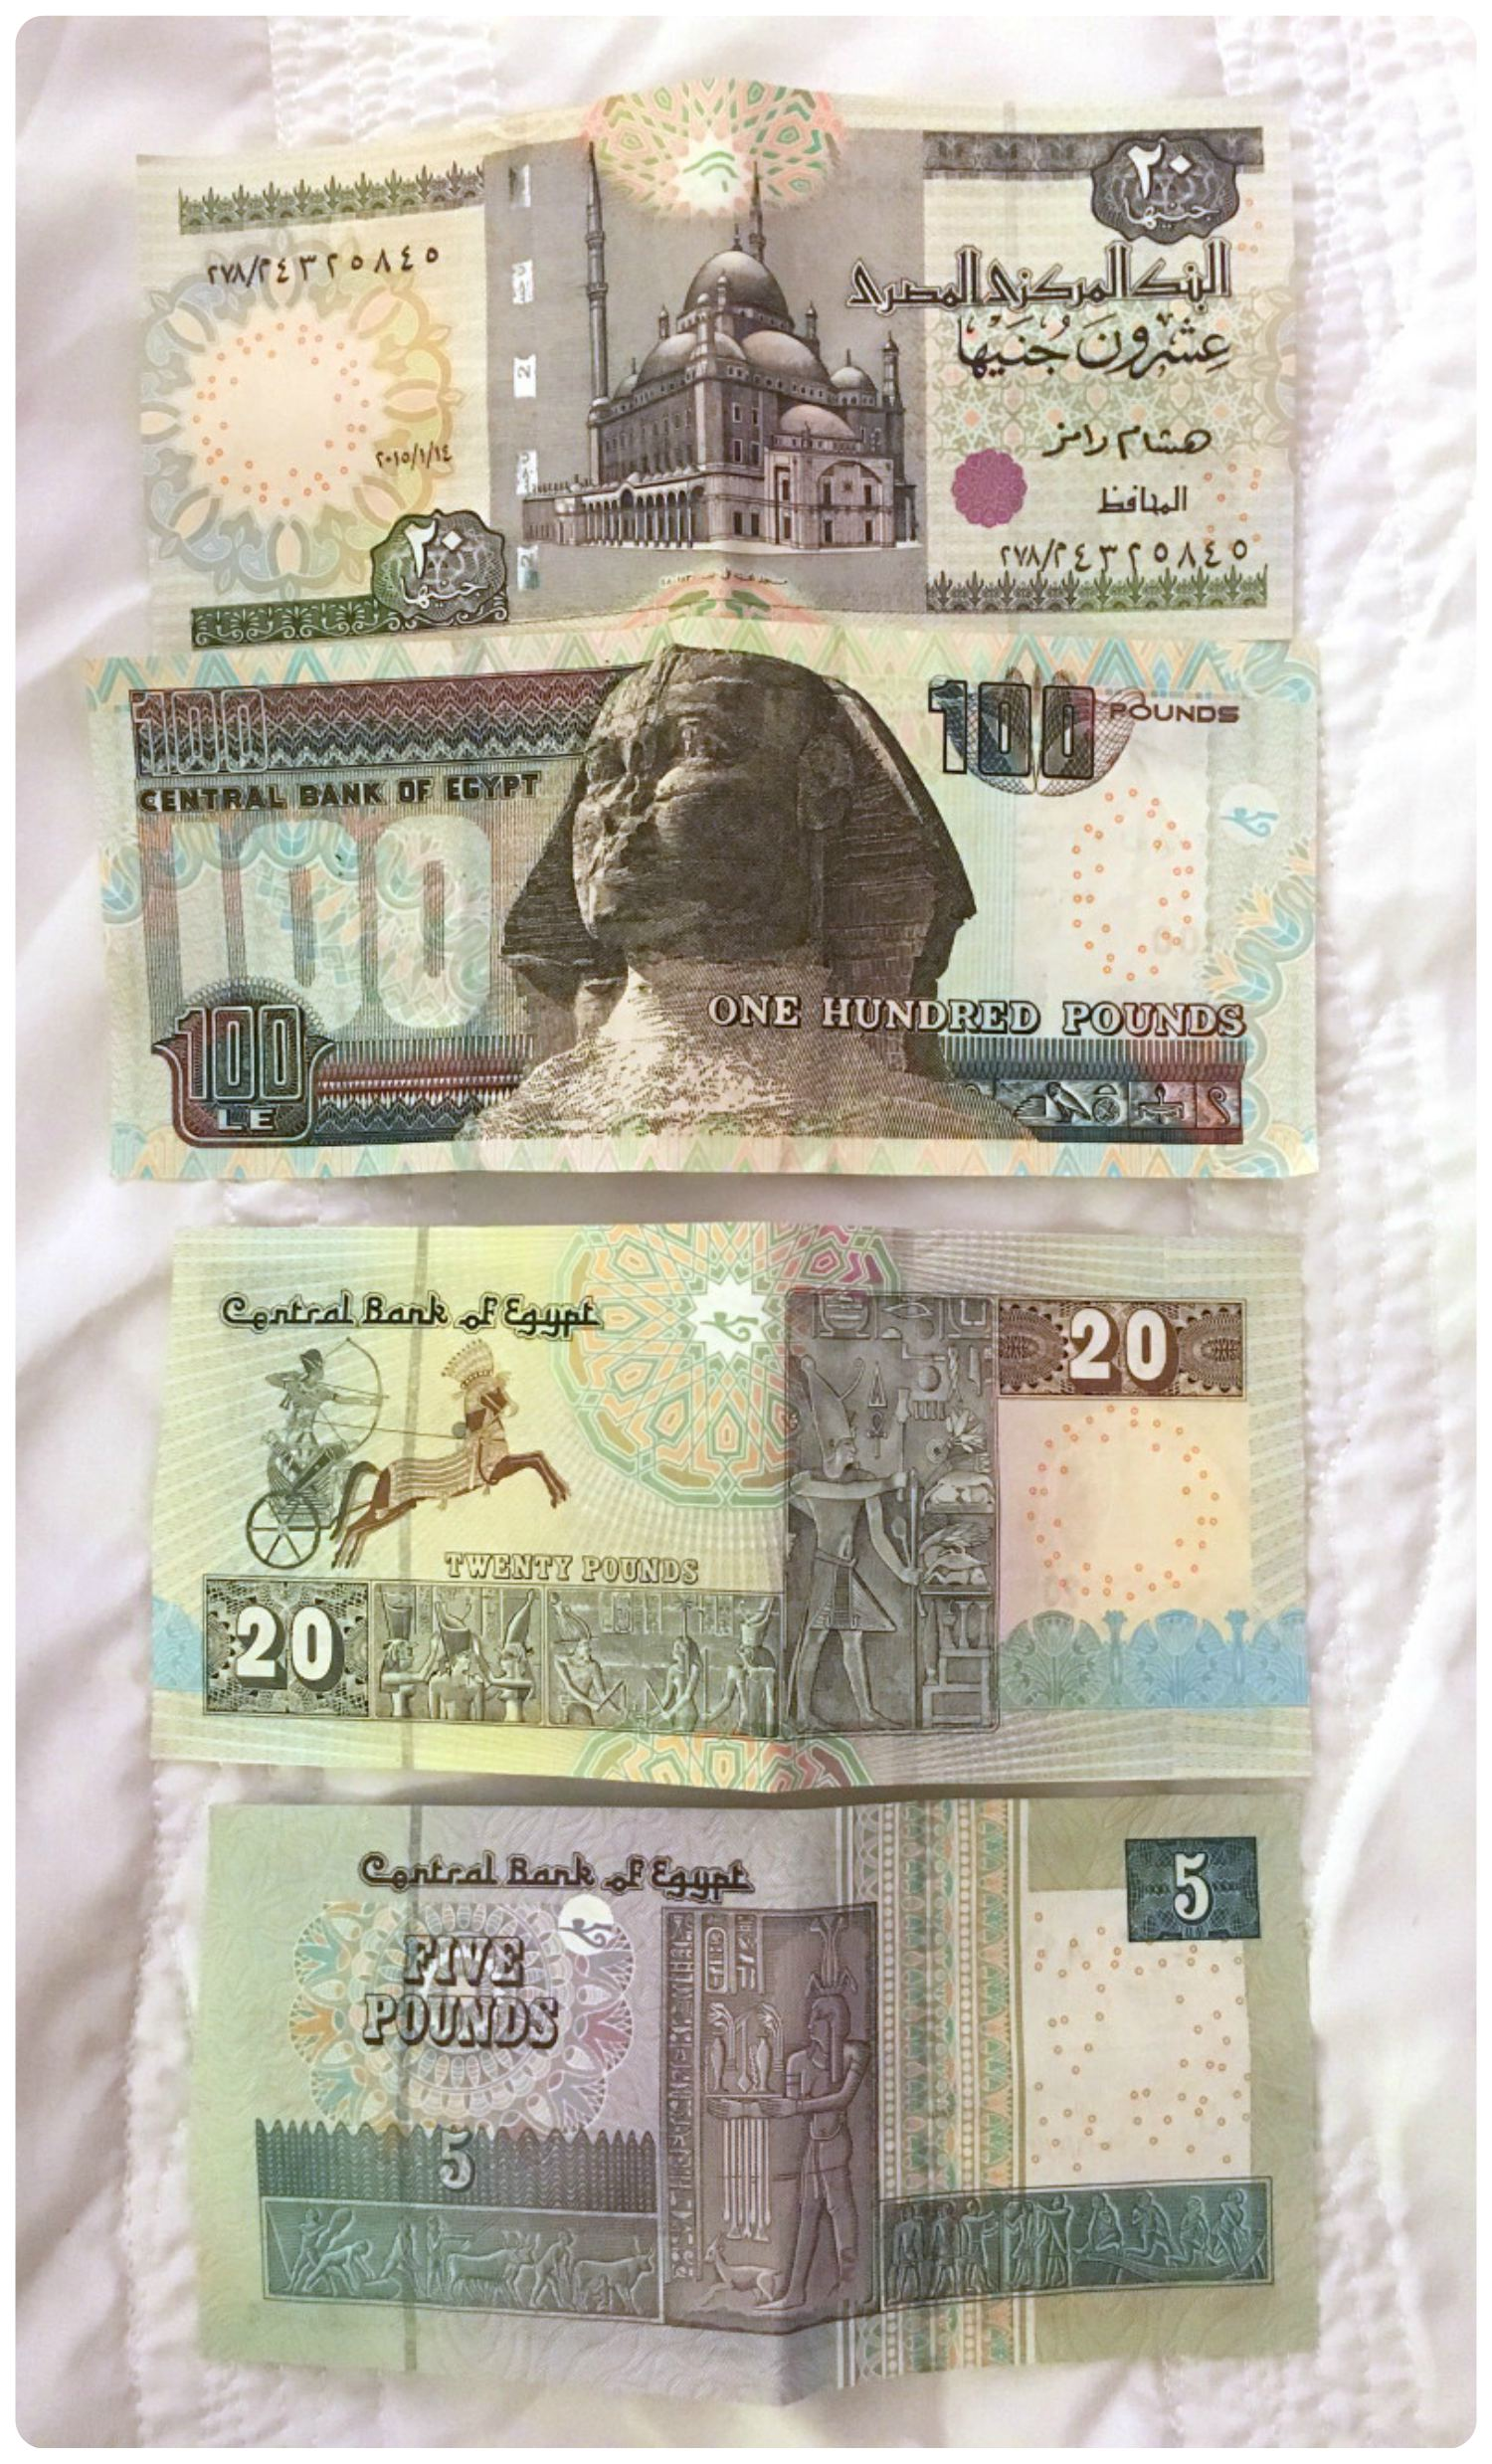 Egyptian currency is in Egyptian Pounds. It's always a good idea to be familiar with the bank notes, so you're less likely to get or give the incorrect amount when making purchases.